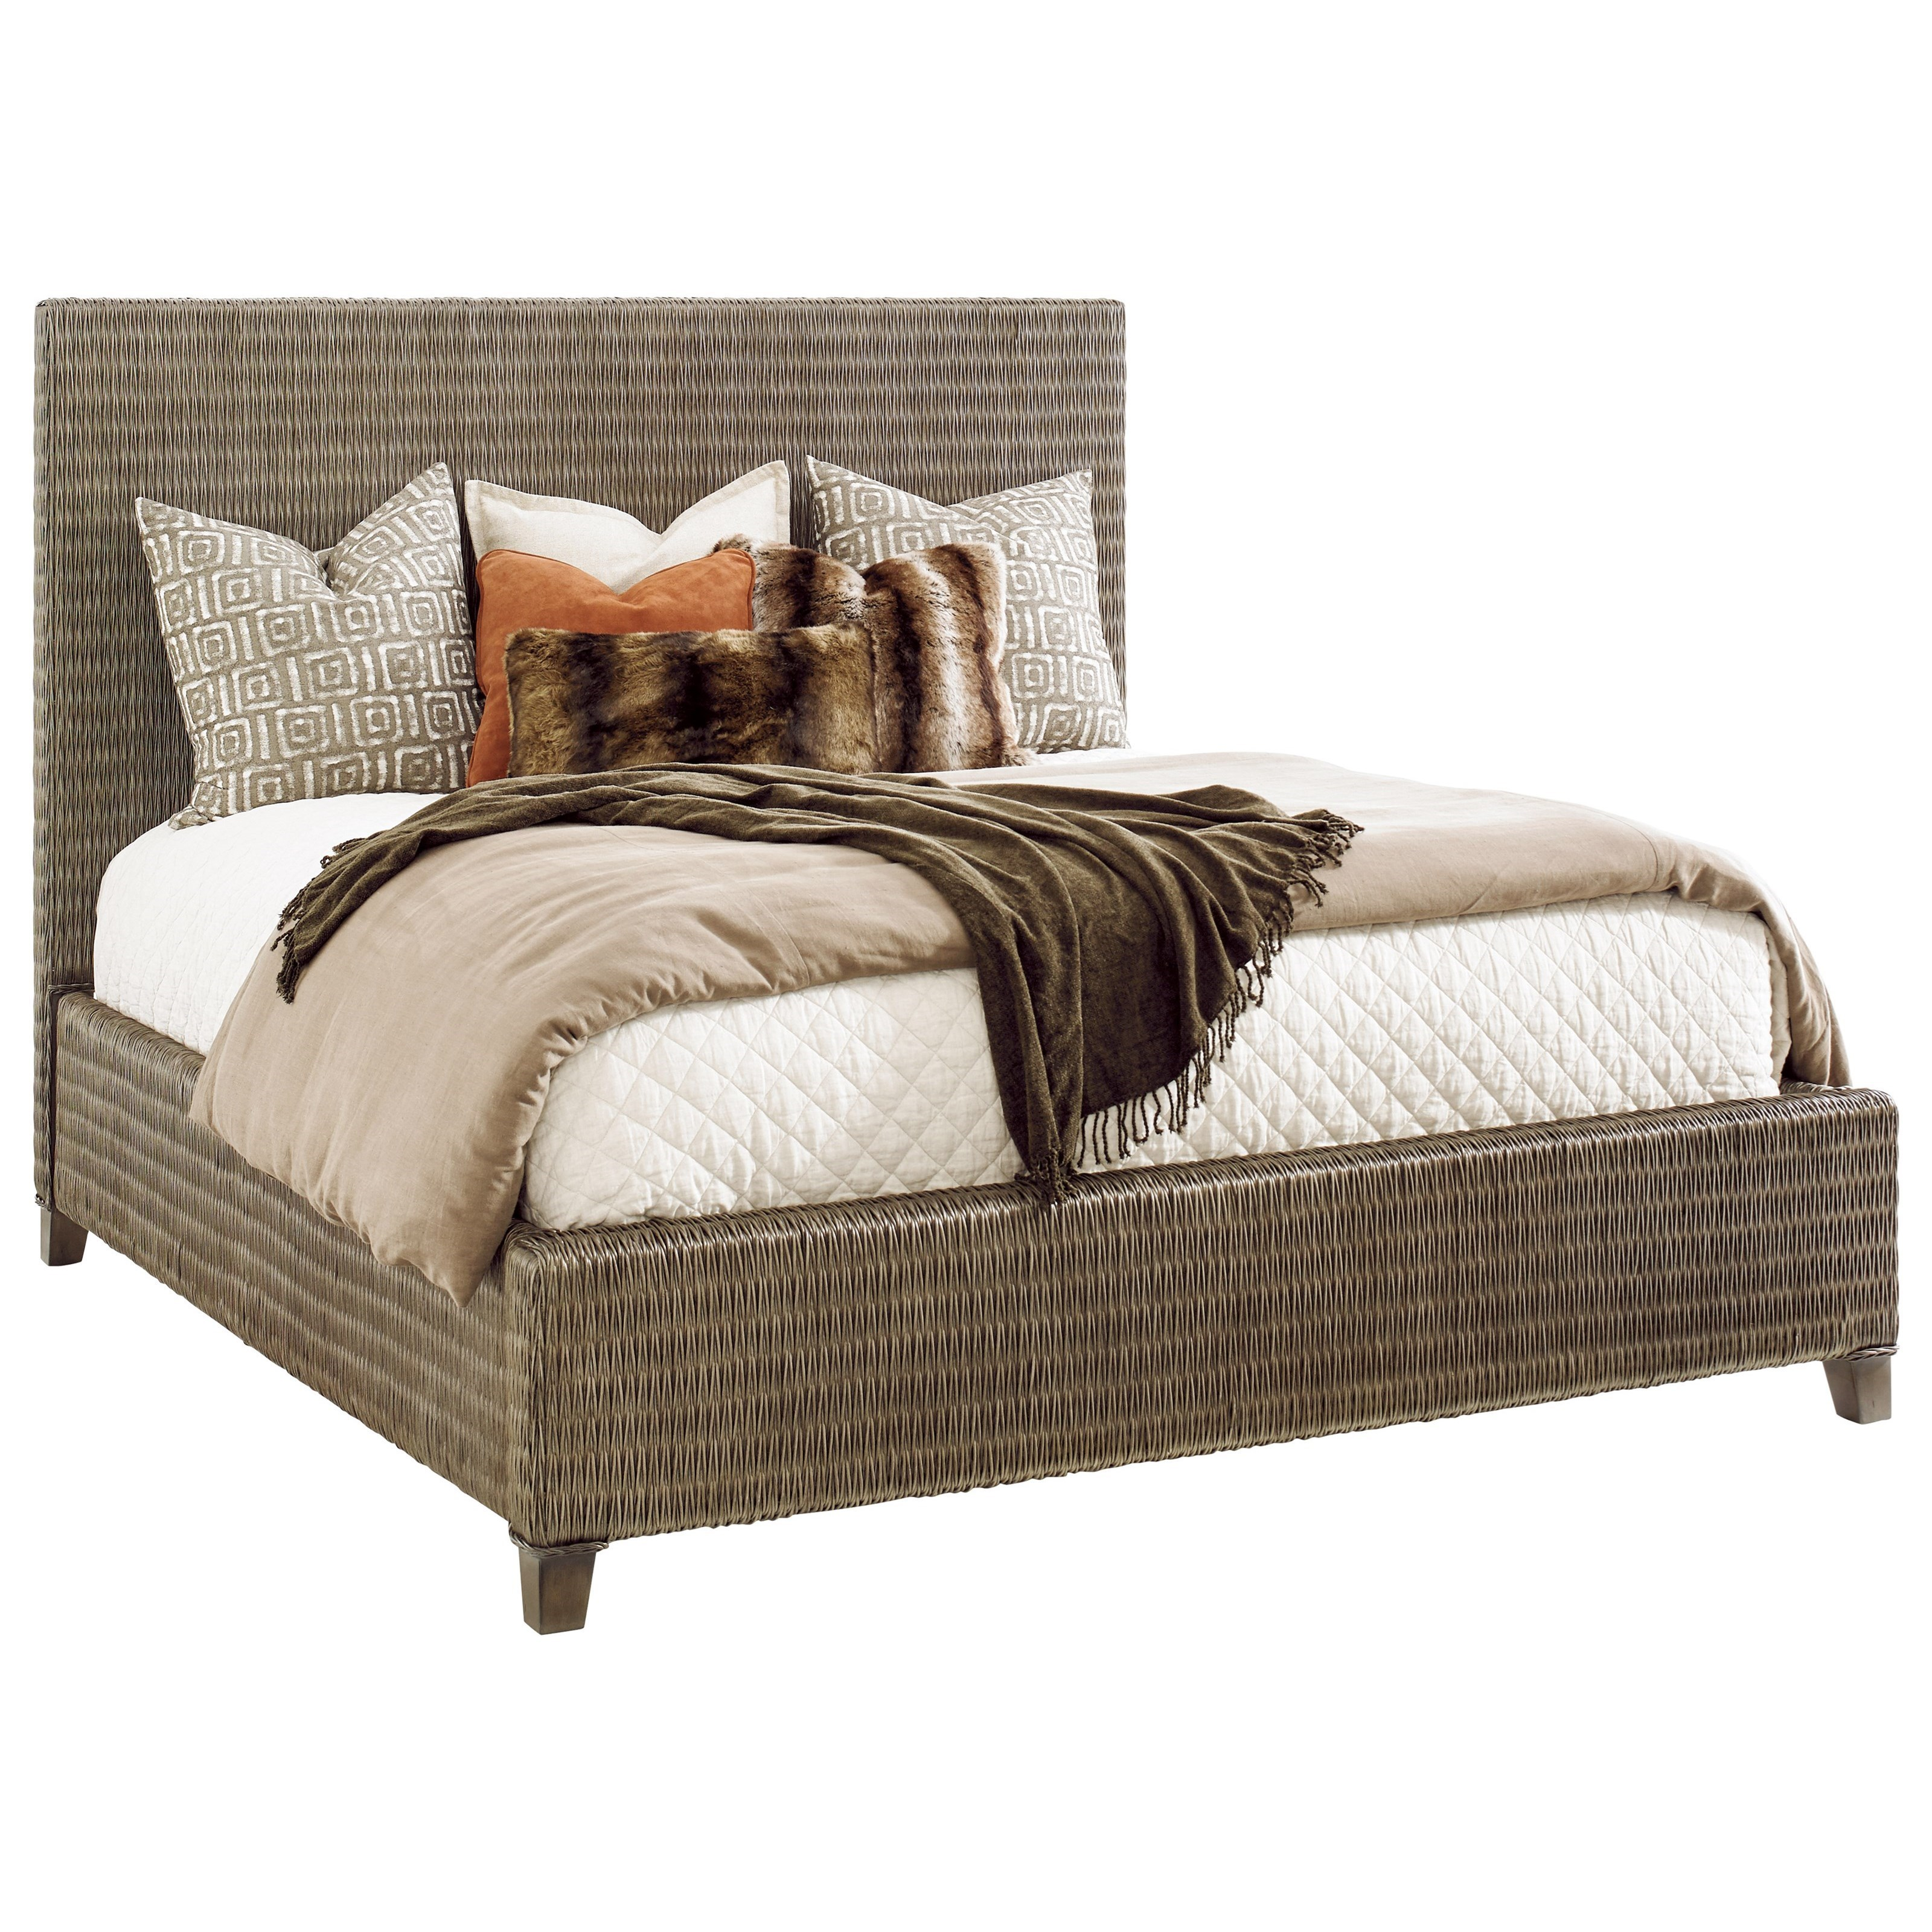 Tommy Bahama Home Cypress Point Driftwood Isle Woven Wicker Platform Bed California King Size Howell Furniture Platform Beds Low Profile Beds